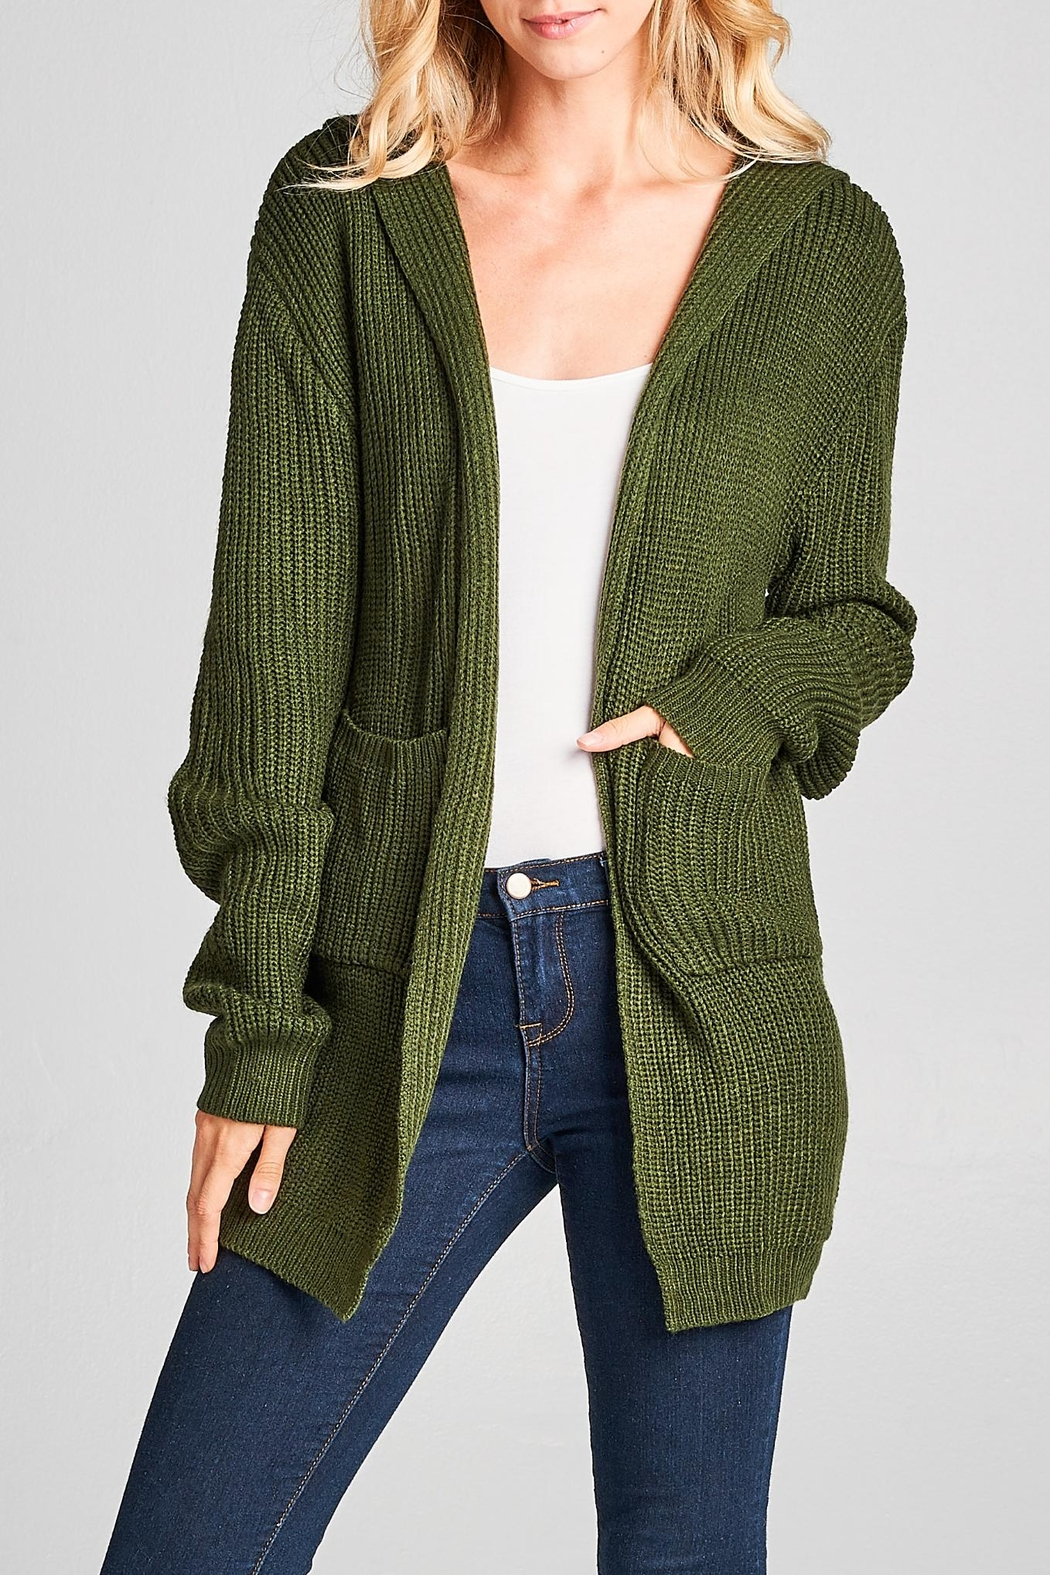 Racine Lace Up Cardigan - Front Full Image